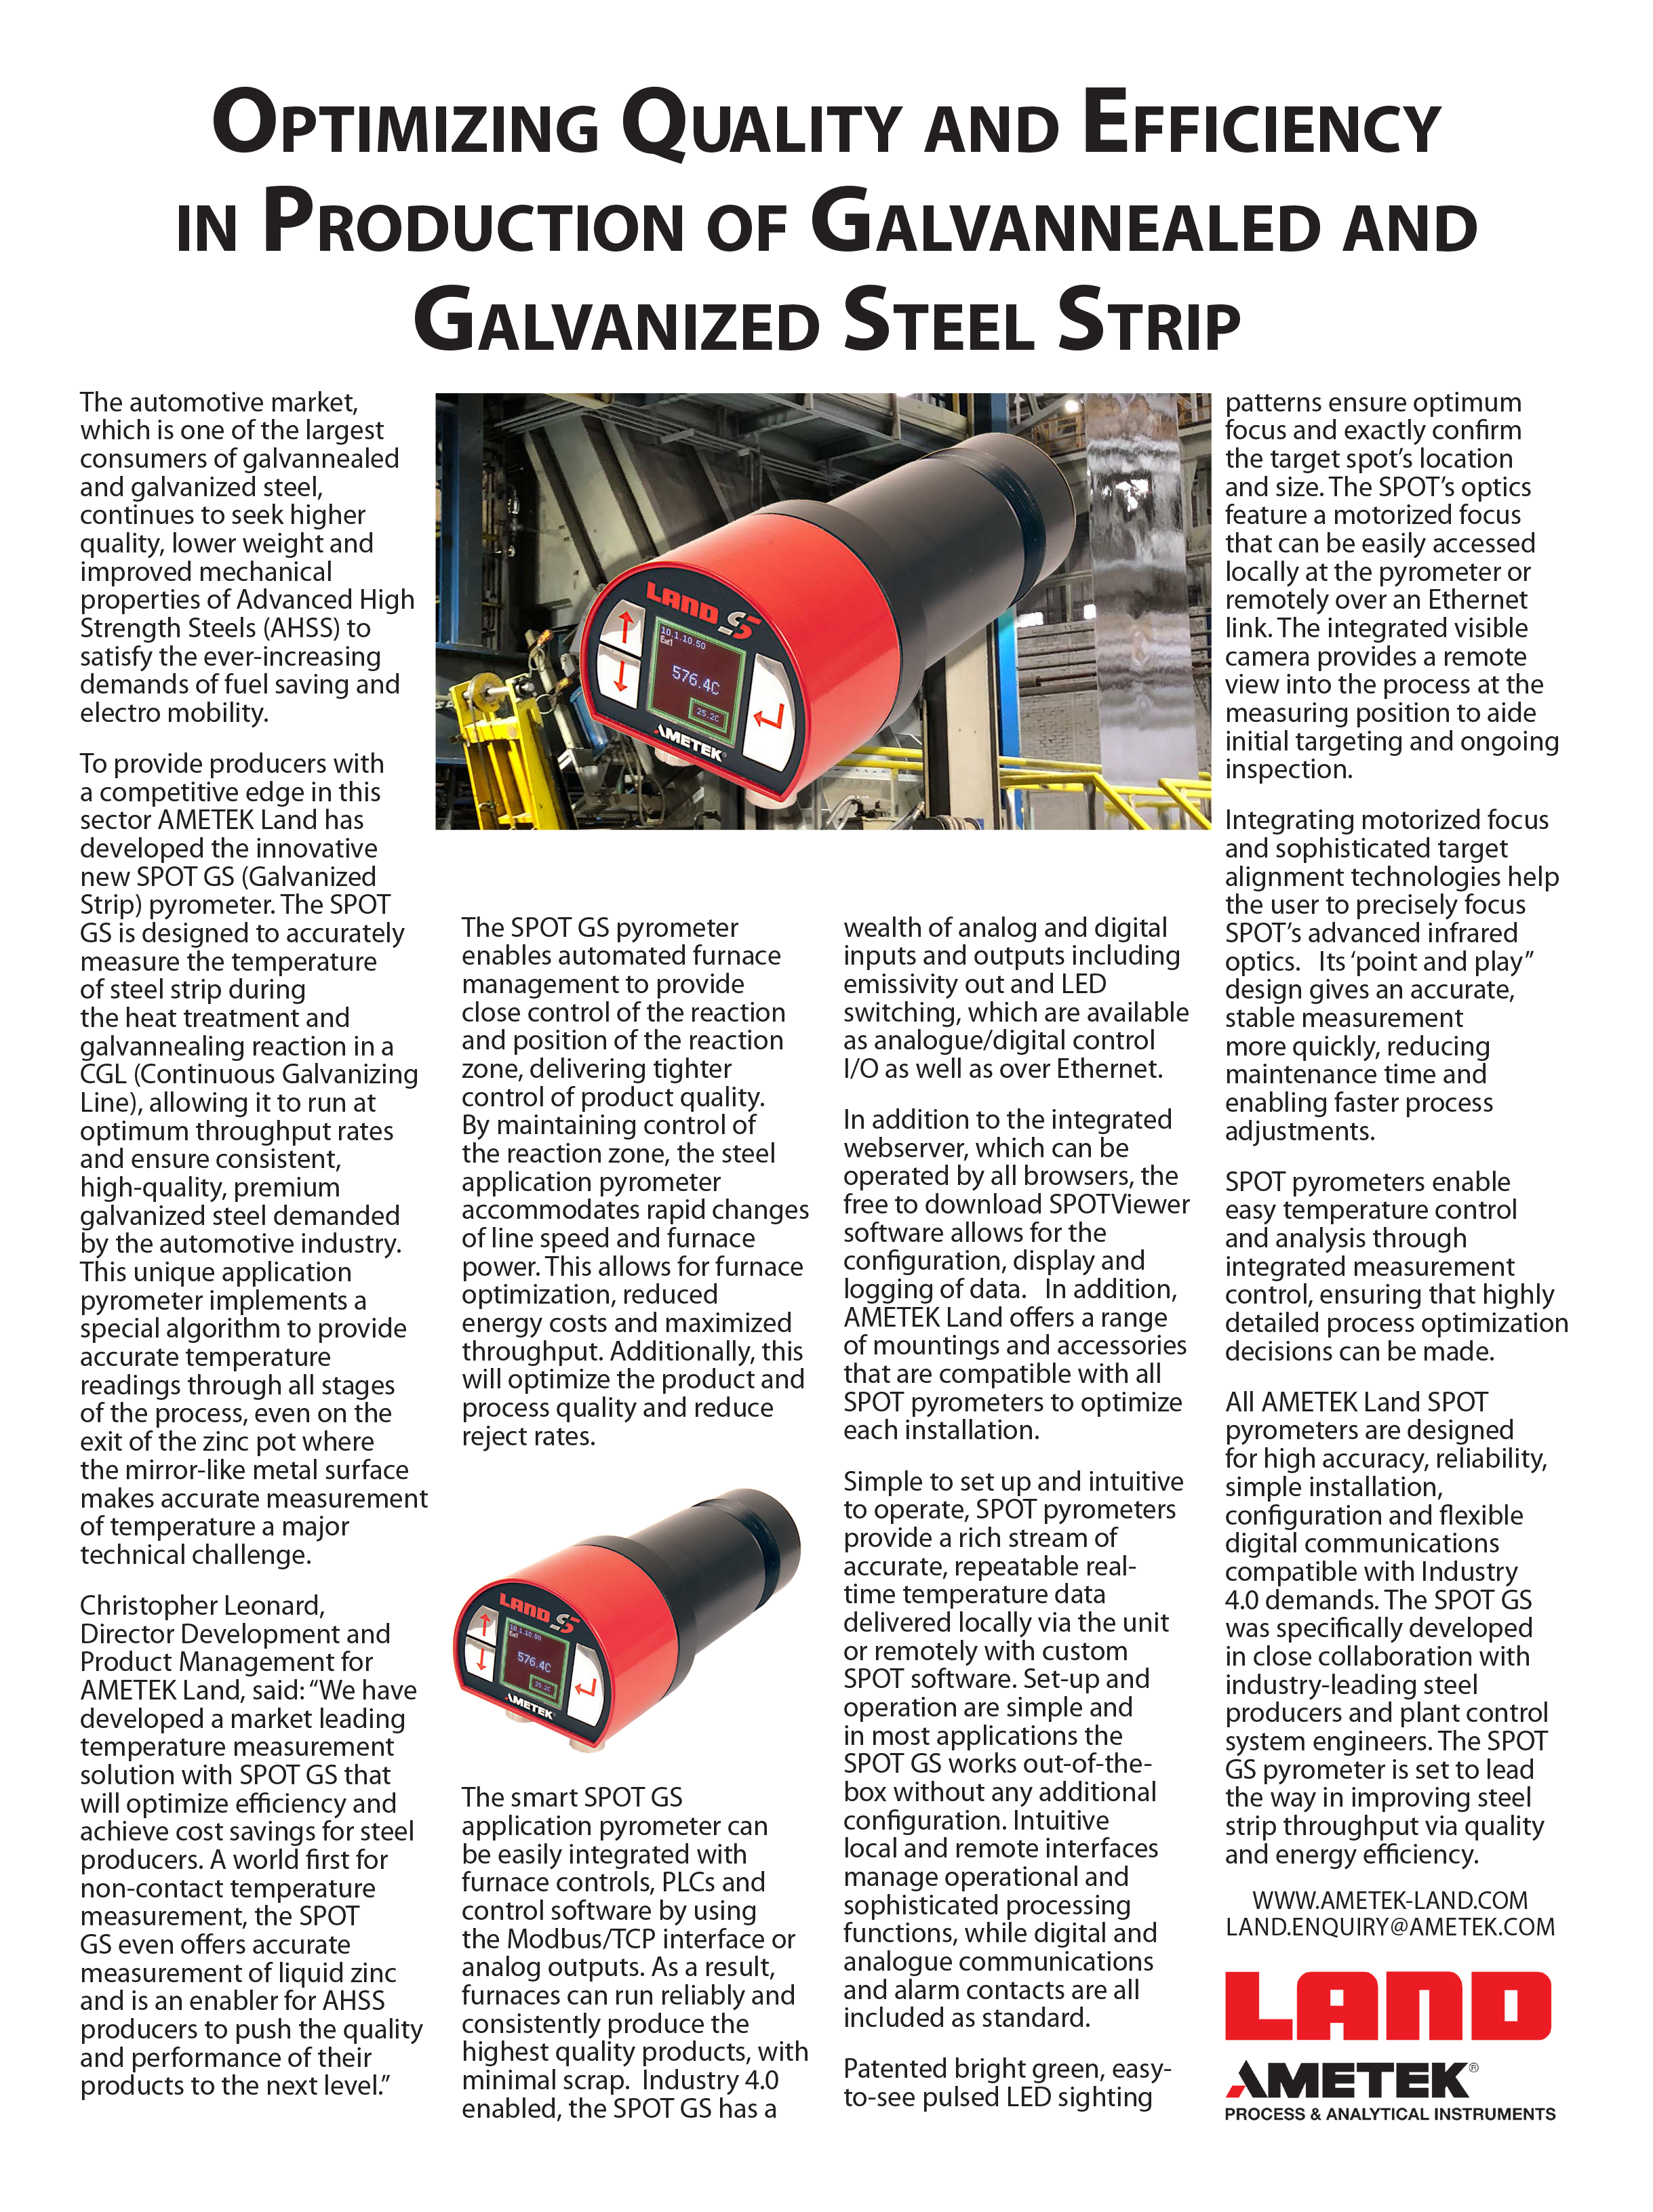 Optimizing Quality and Efficiency in Production of Galvannealed and Galvanized Steel Strip